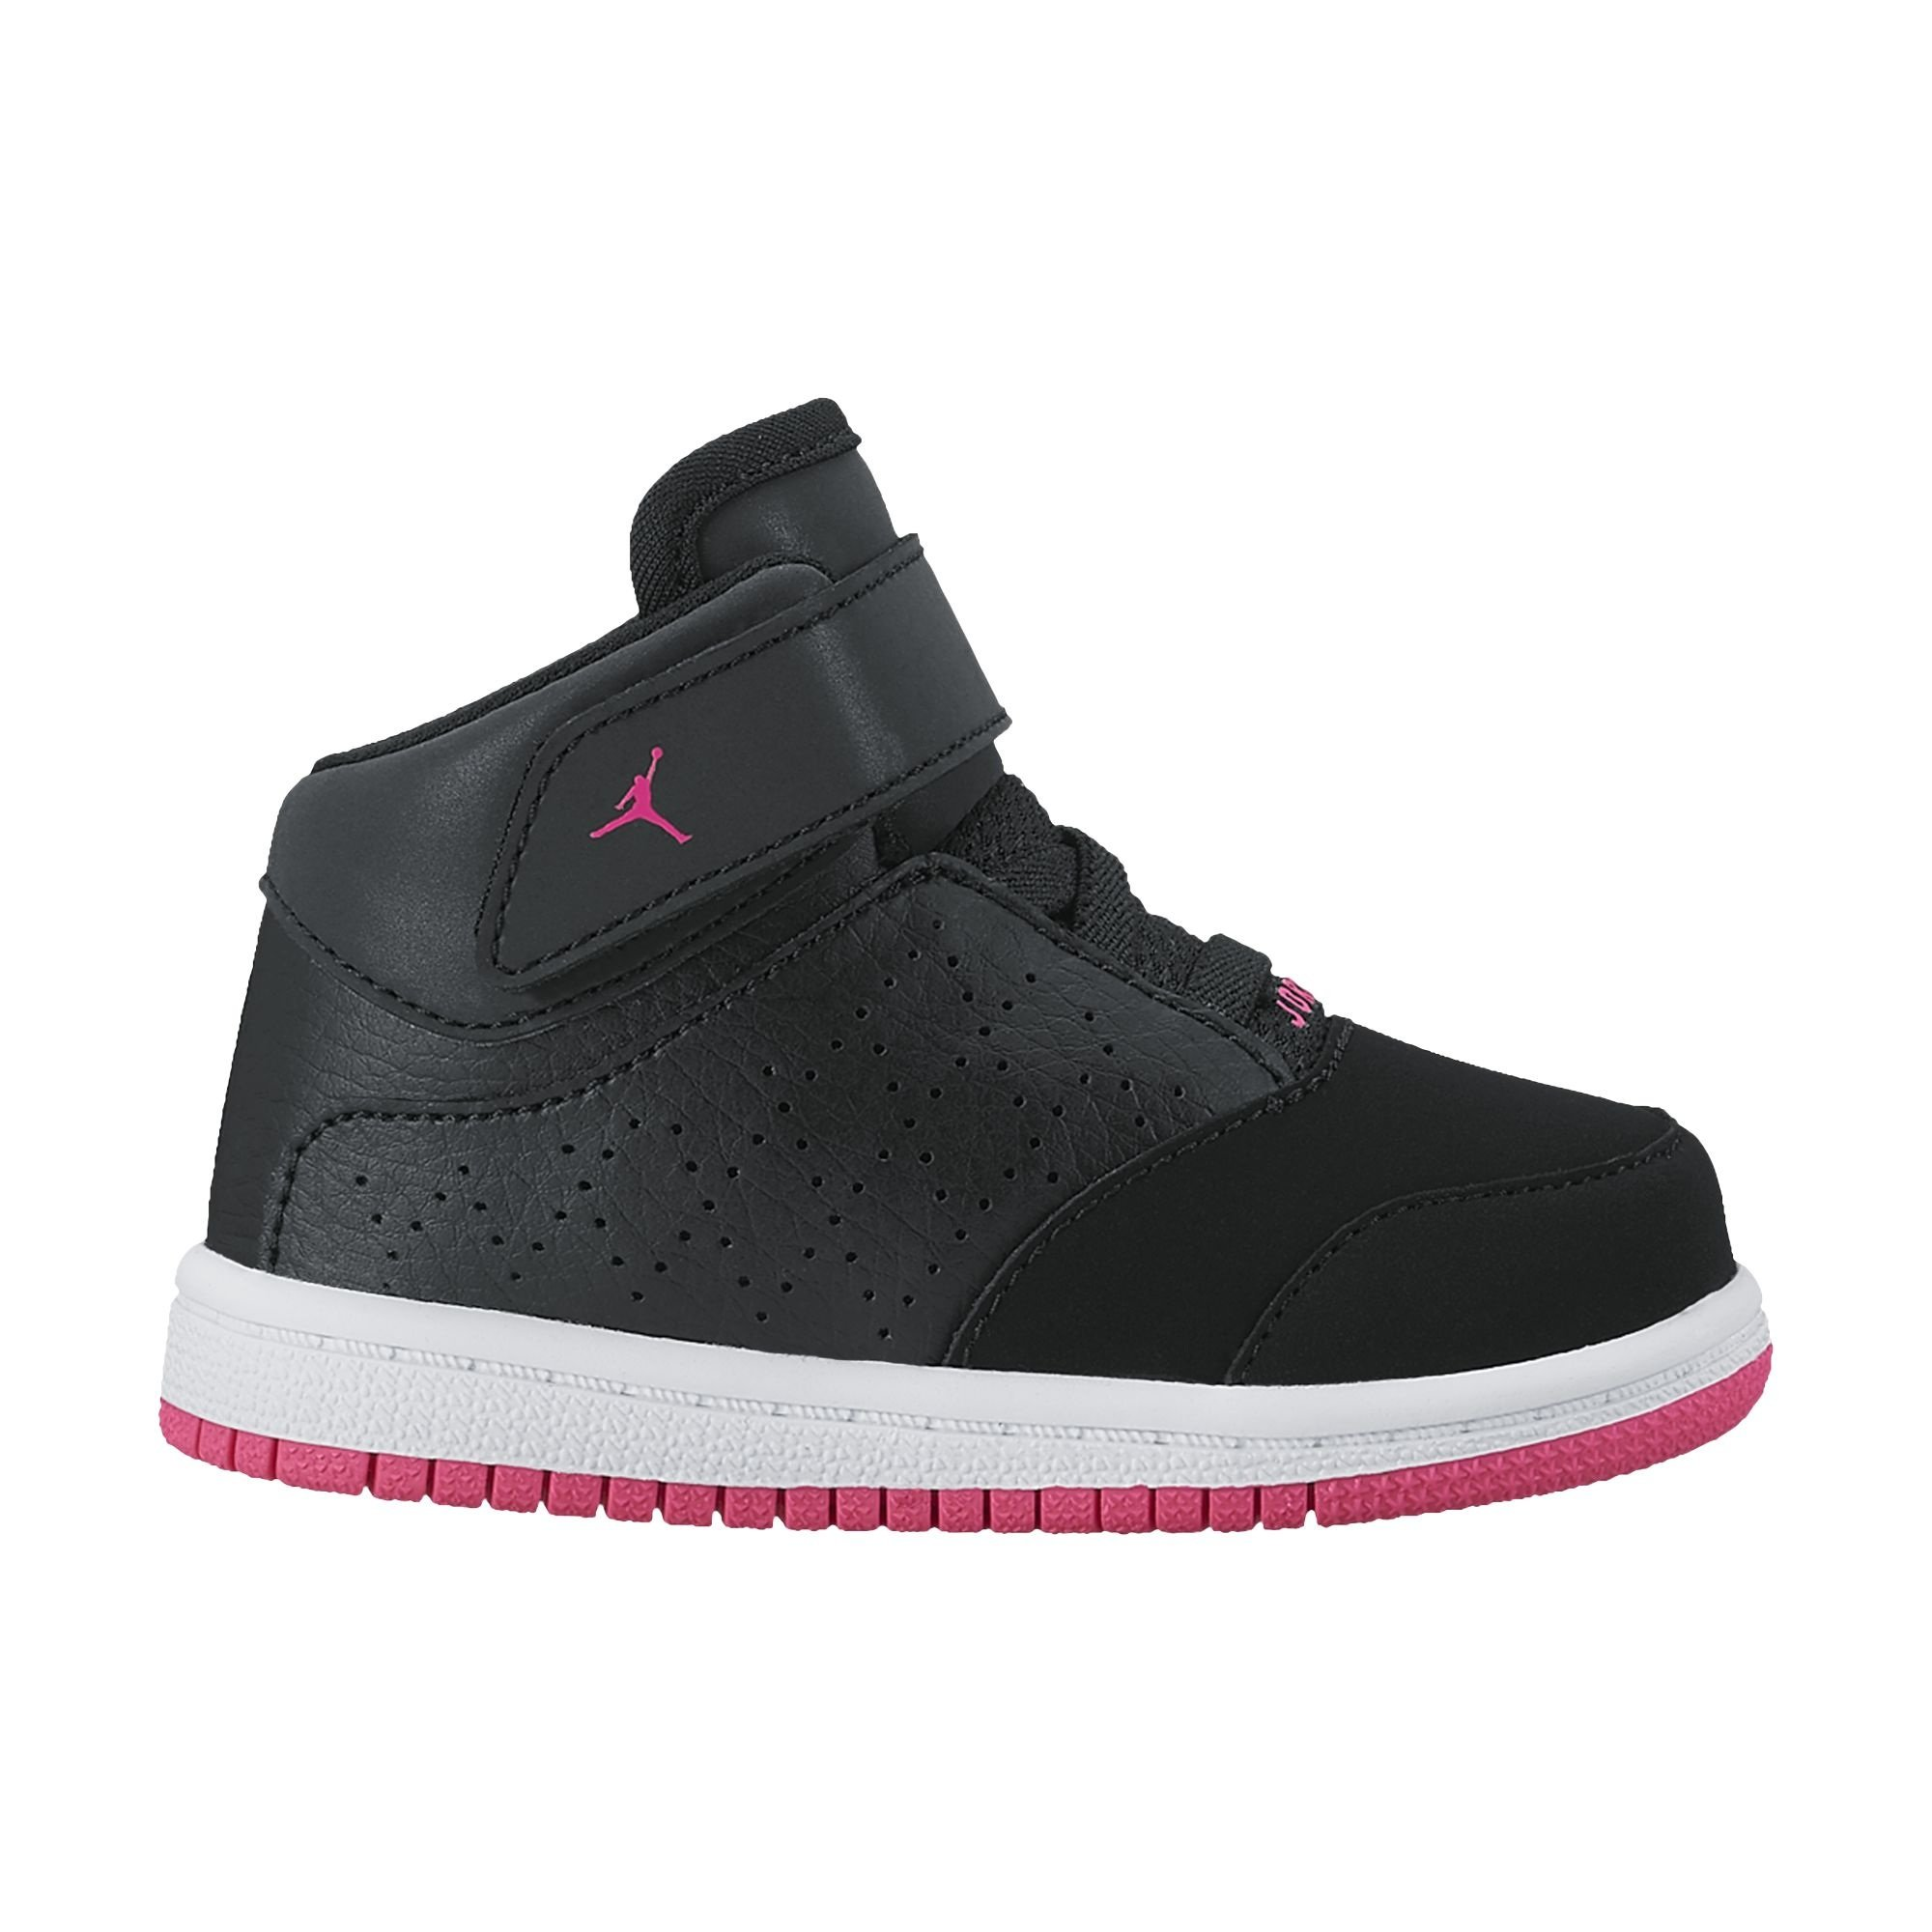 NIKE Jordan Toddler's 1 Flight 5 Premium (GT) Black/Hyper Pink-White 881437 002 (8c)